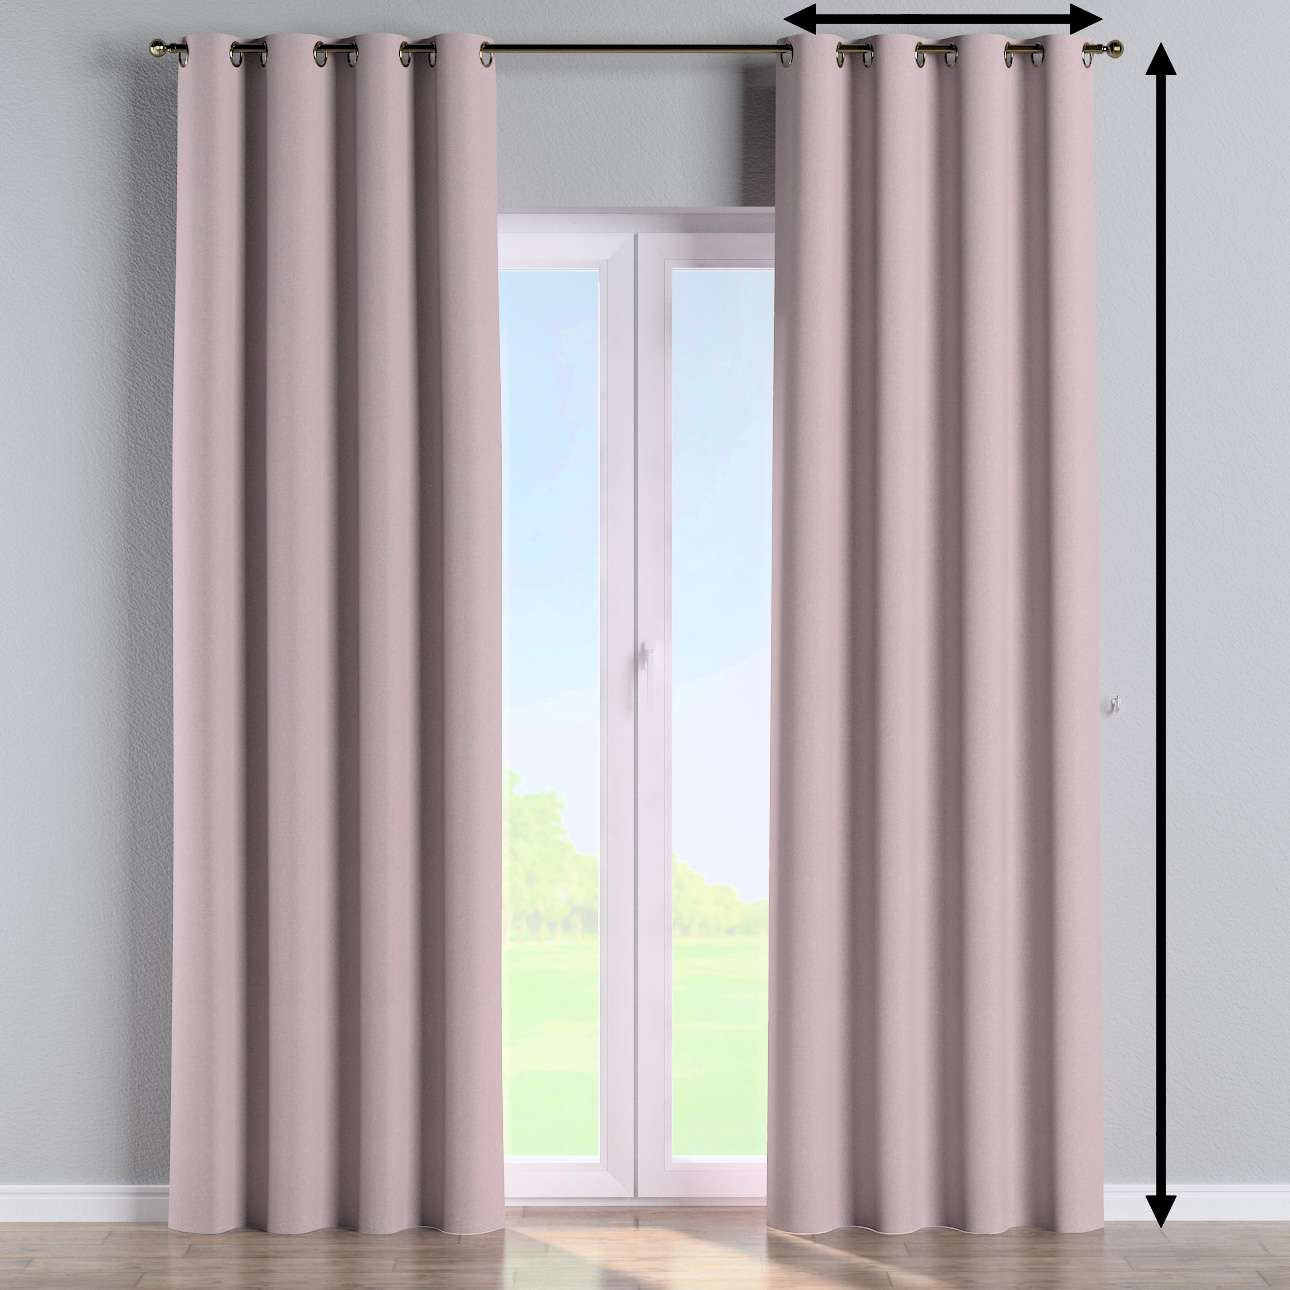 Eyelet curtain in collection Amsterdam, fabric: 704-51